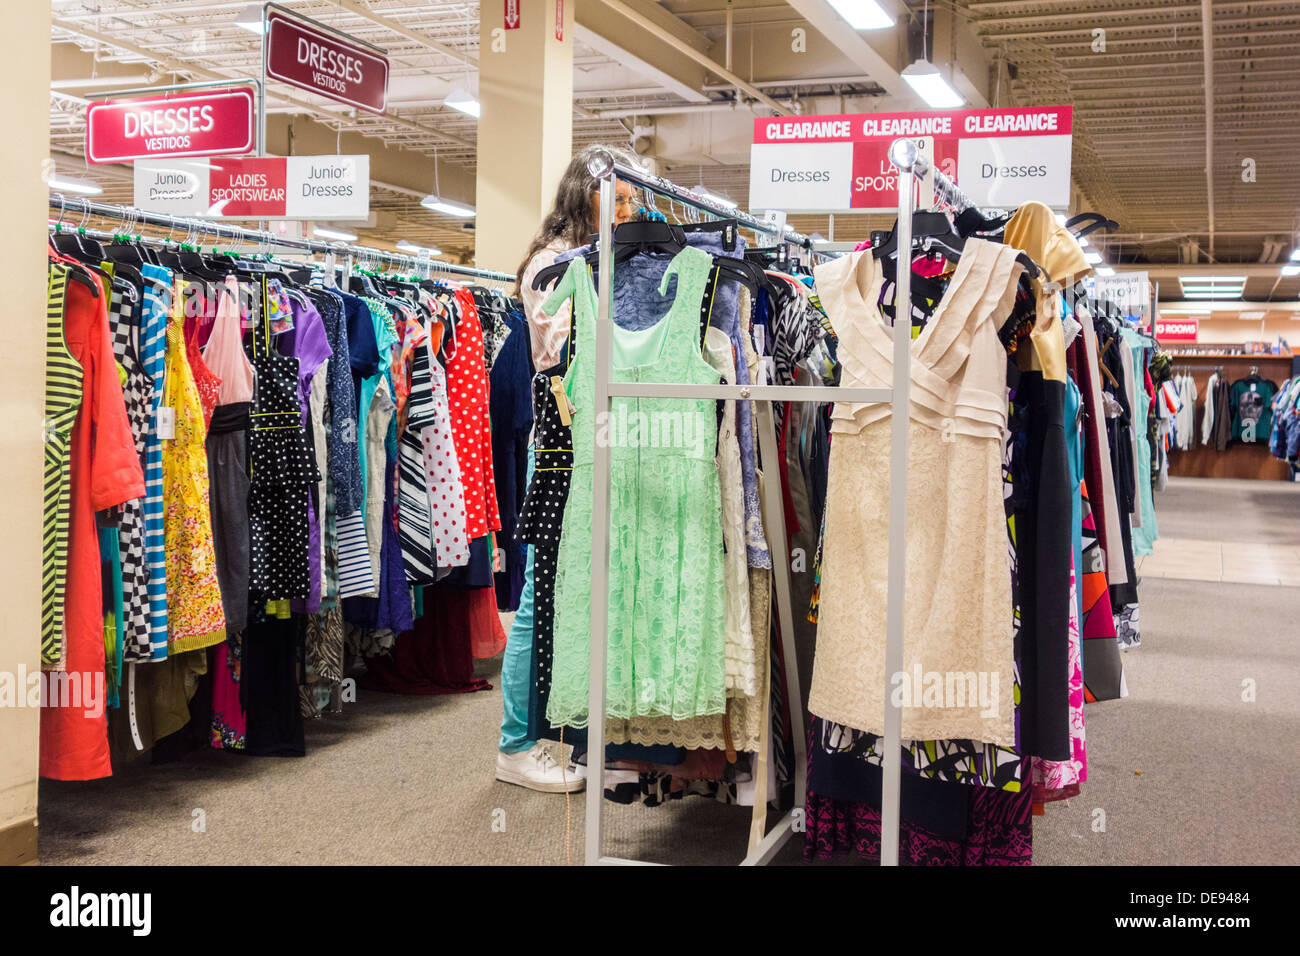 Department store clothes racks for sale